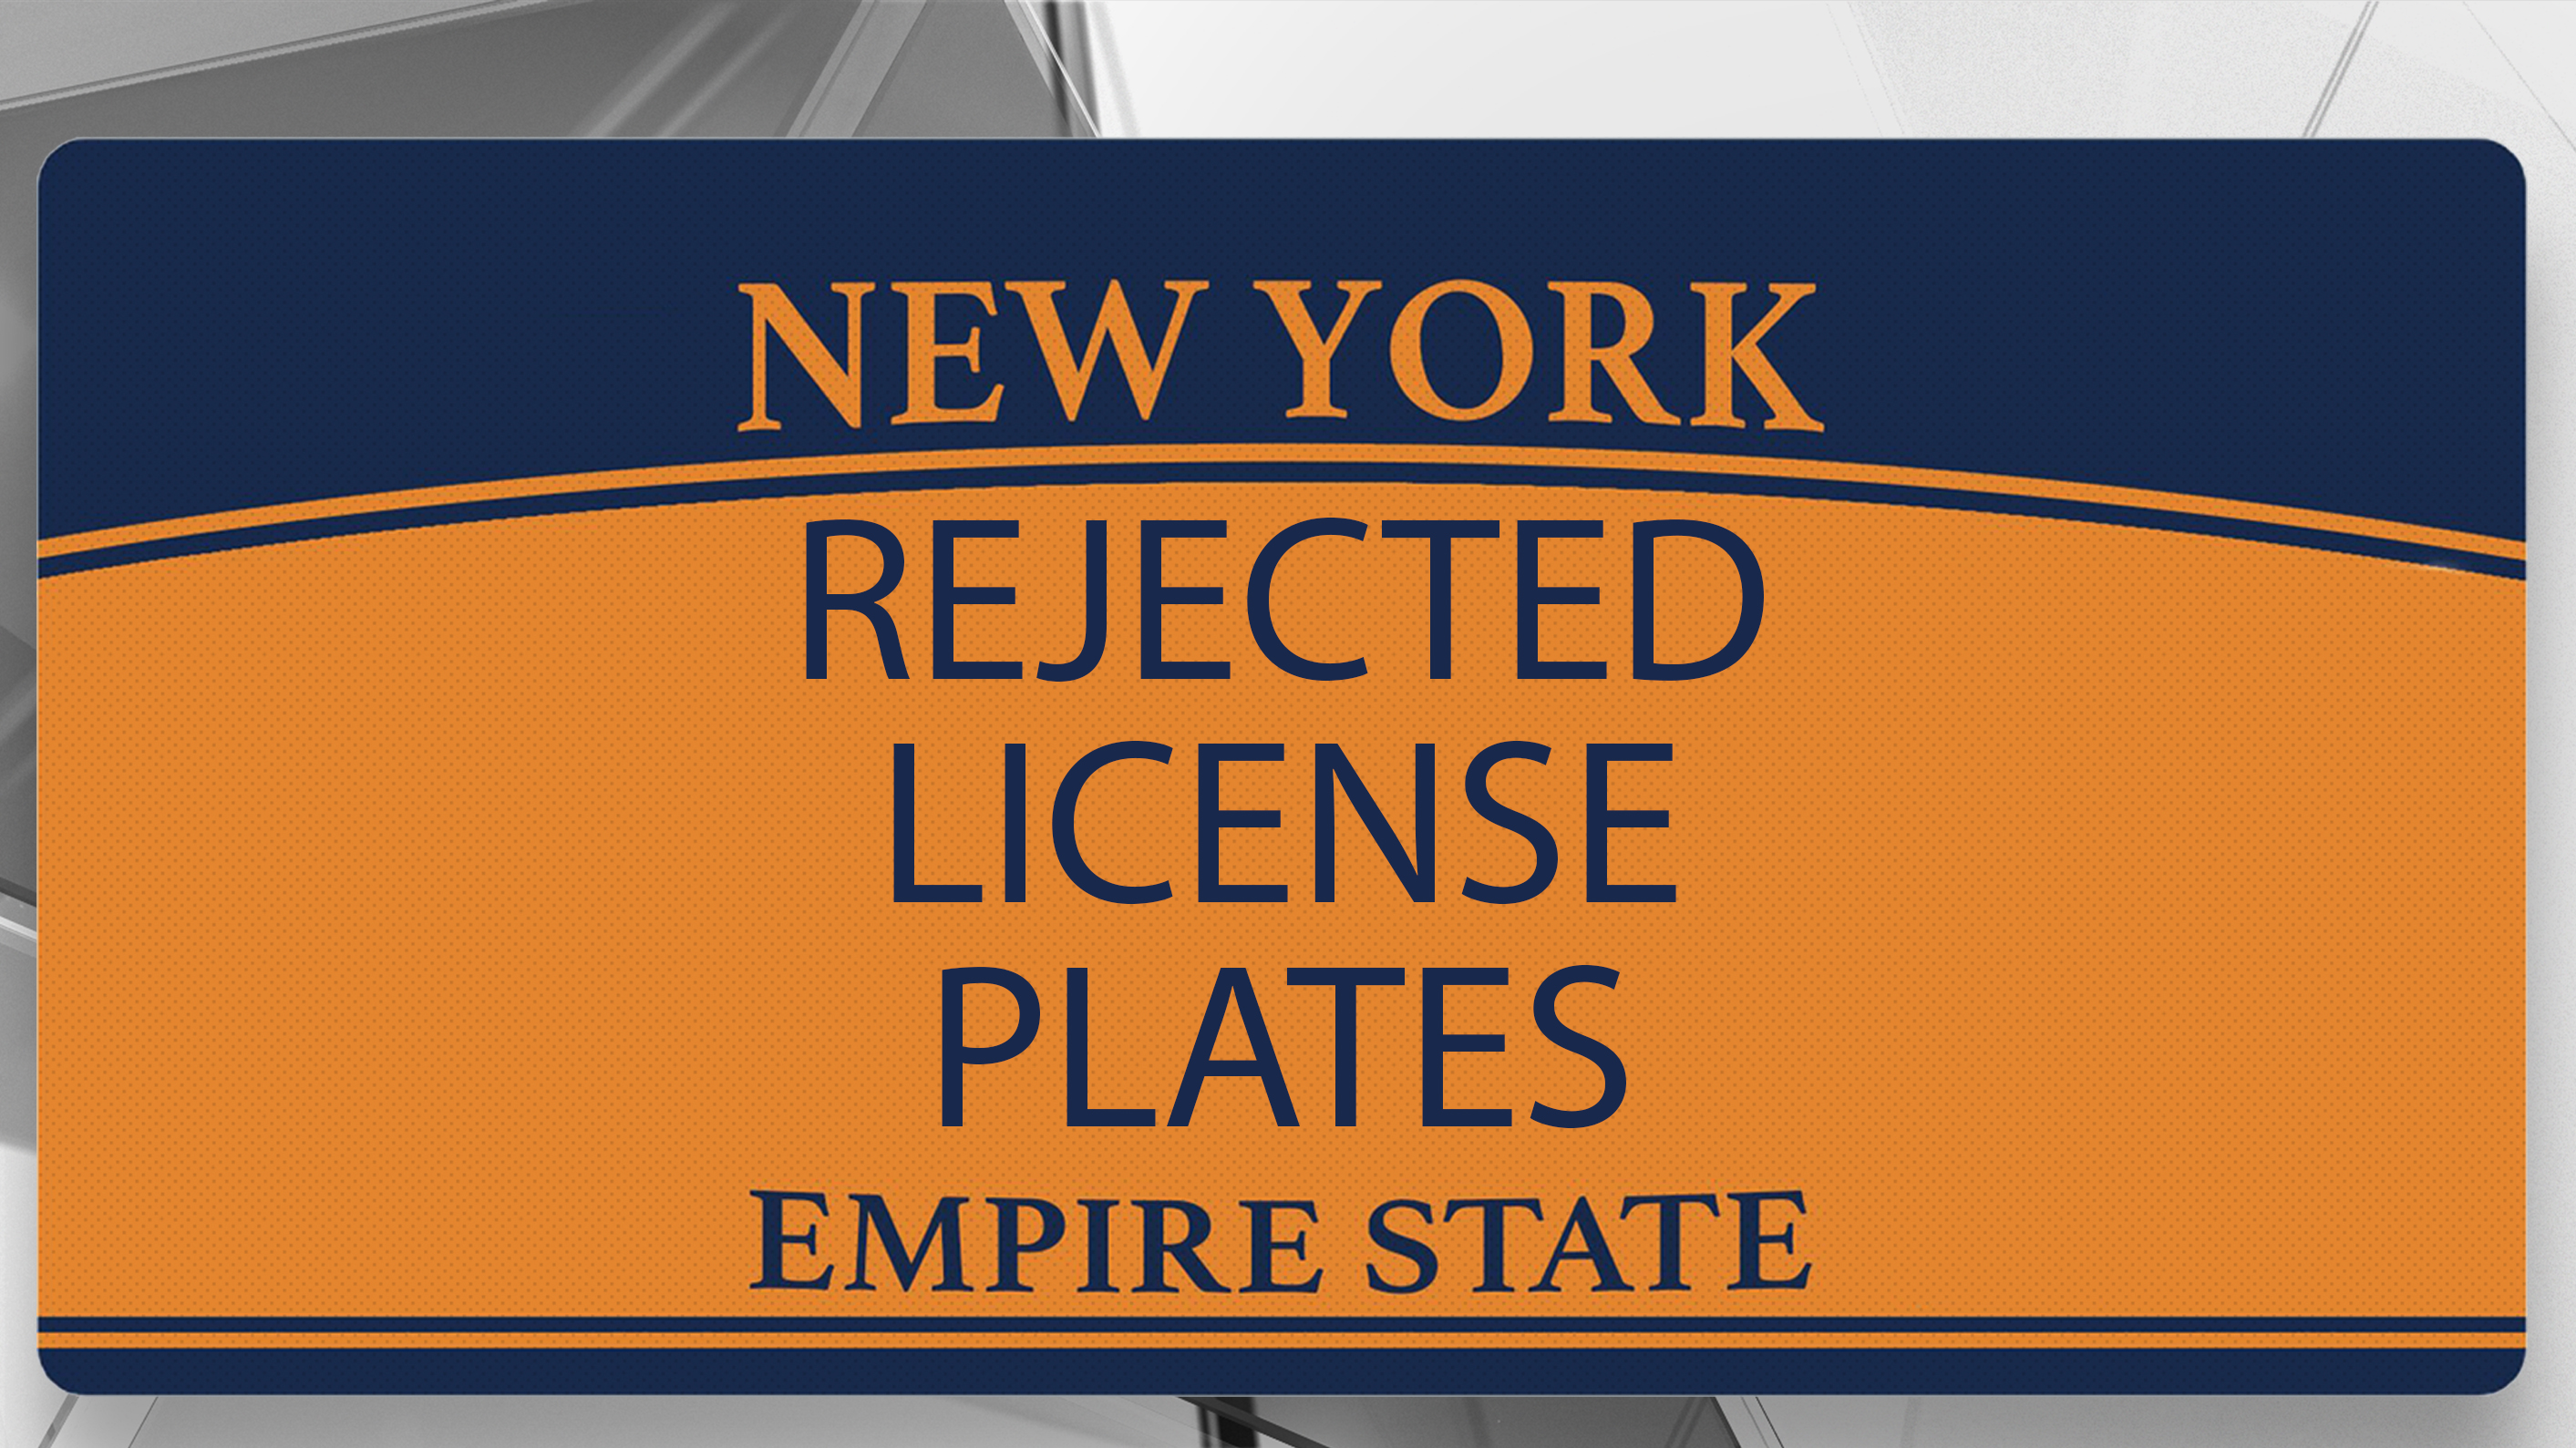 Returning Plates To Dmv Ny >> These Are 90 Of The Weirdest License Plates Rejected By The New York Dmv